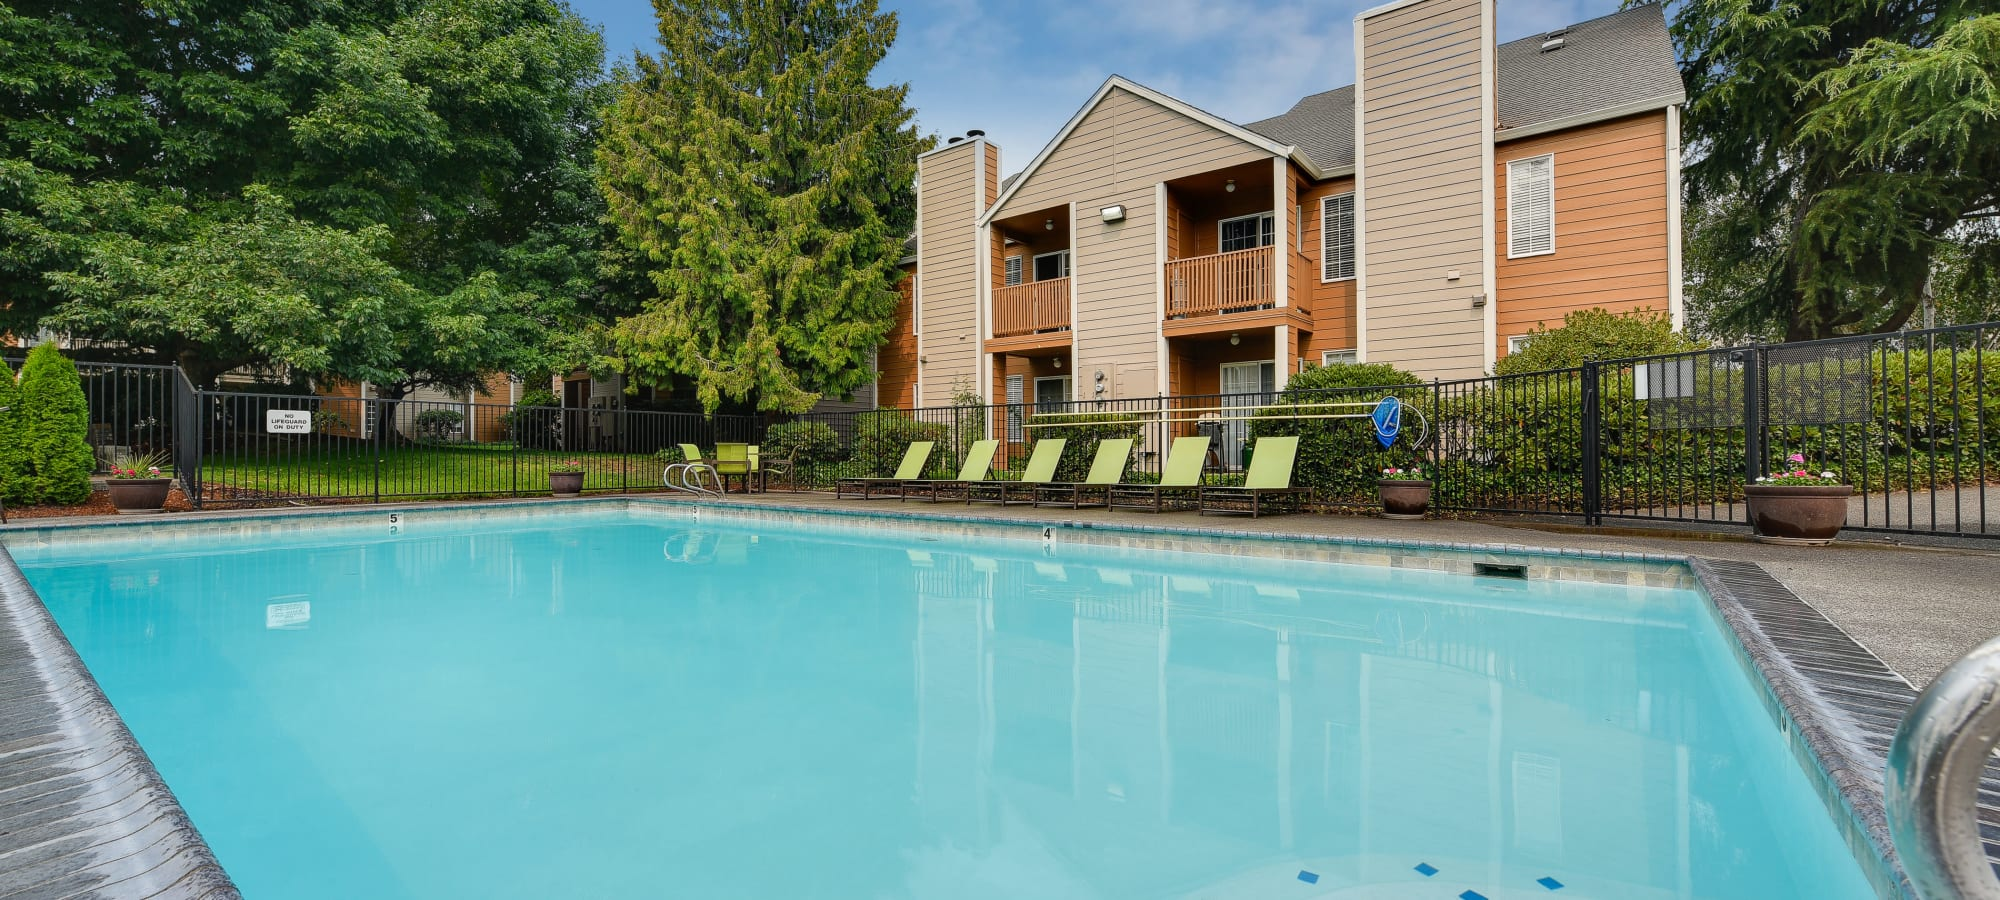 Carriage House Apartments in Vancouver, Washington